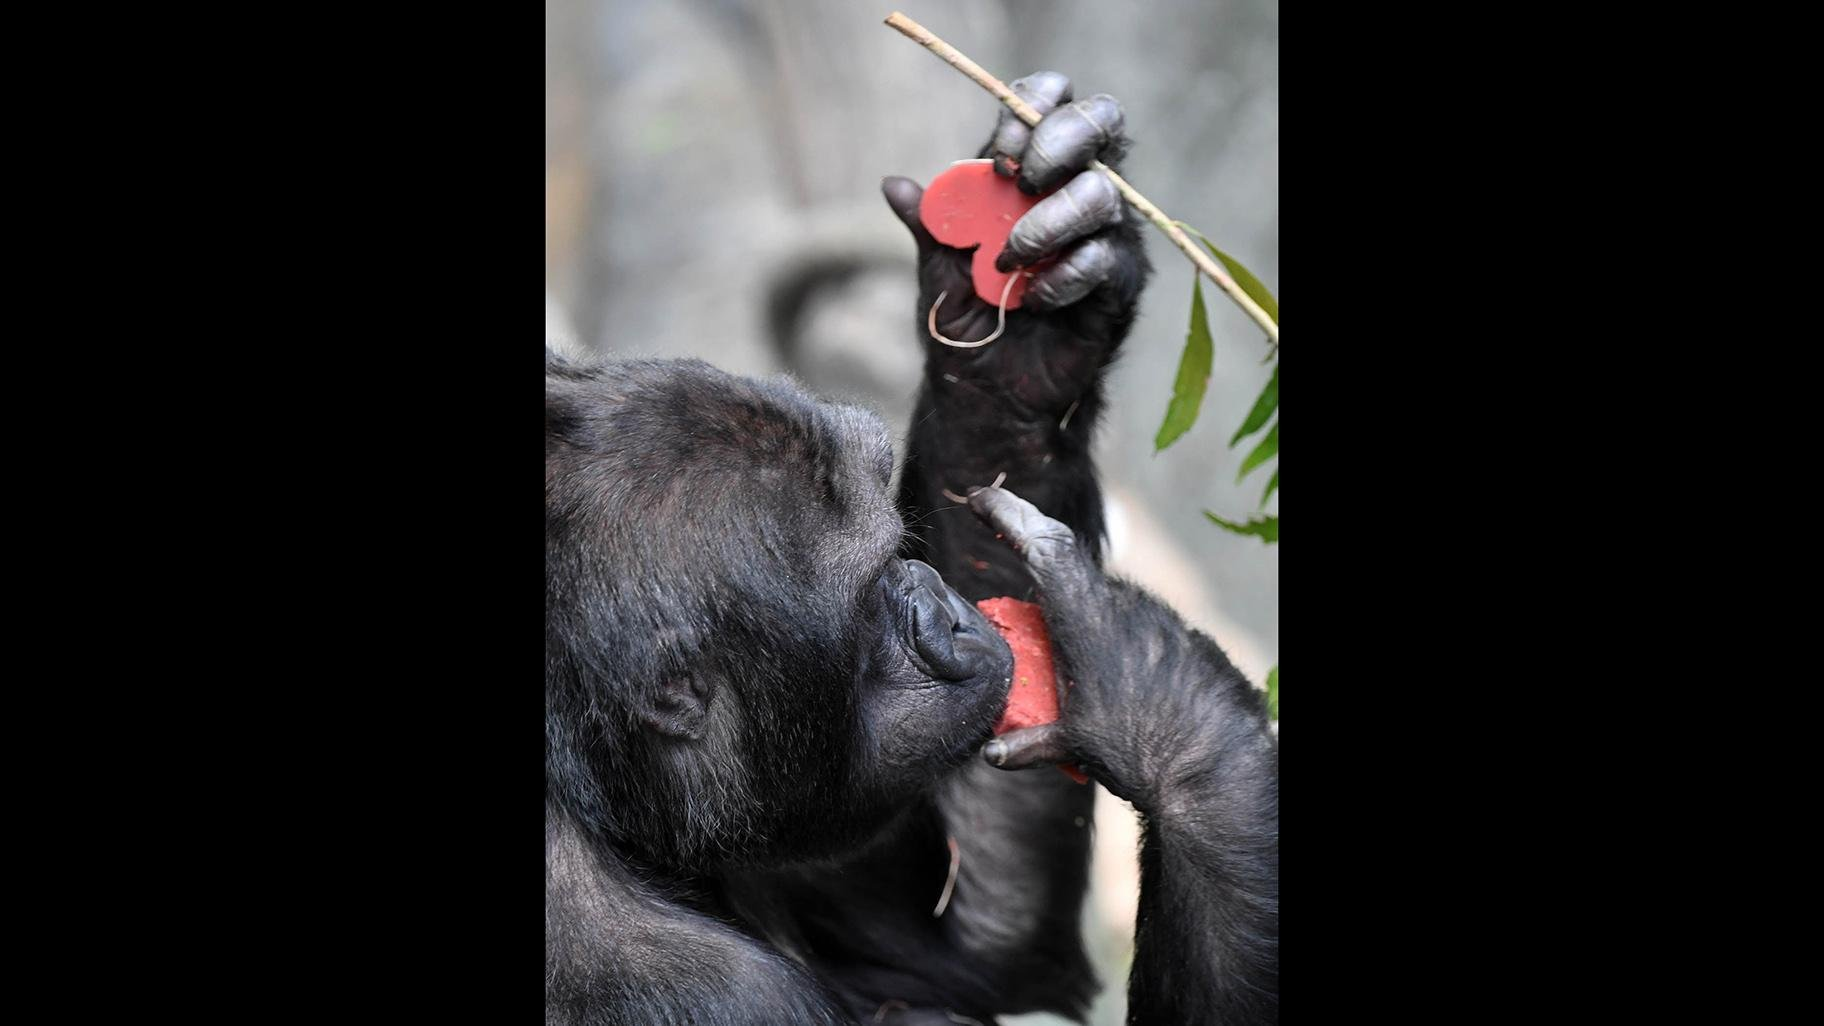 Binti Jua, a western lowland gorilla at Brookfield Zoo. (Jim Schulz / Chicago Zoological Society)